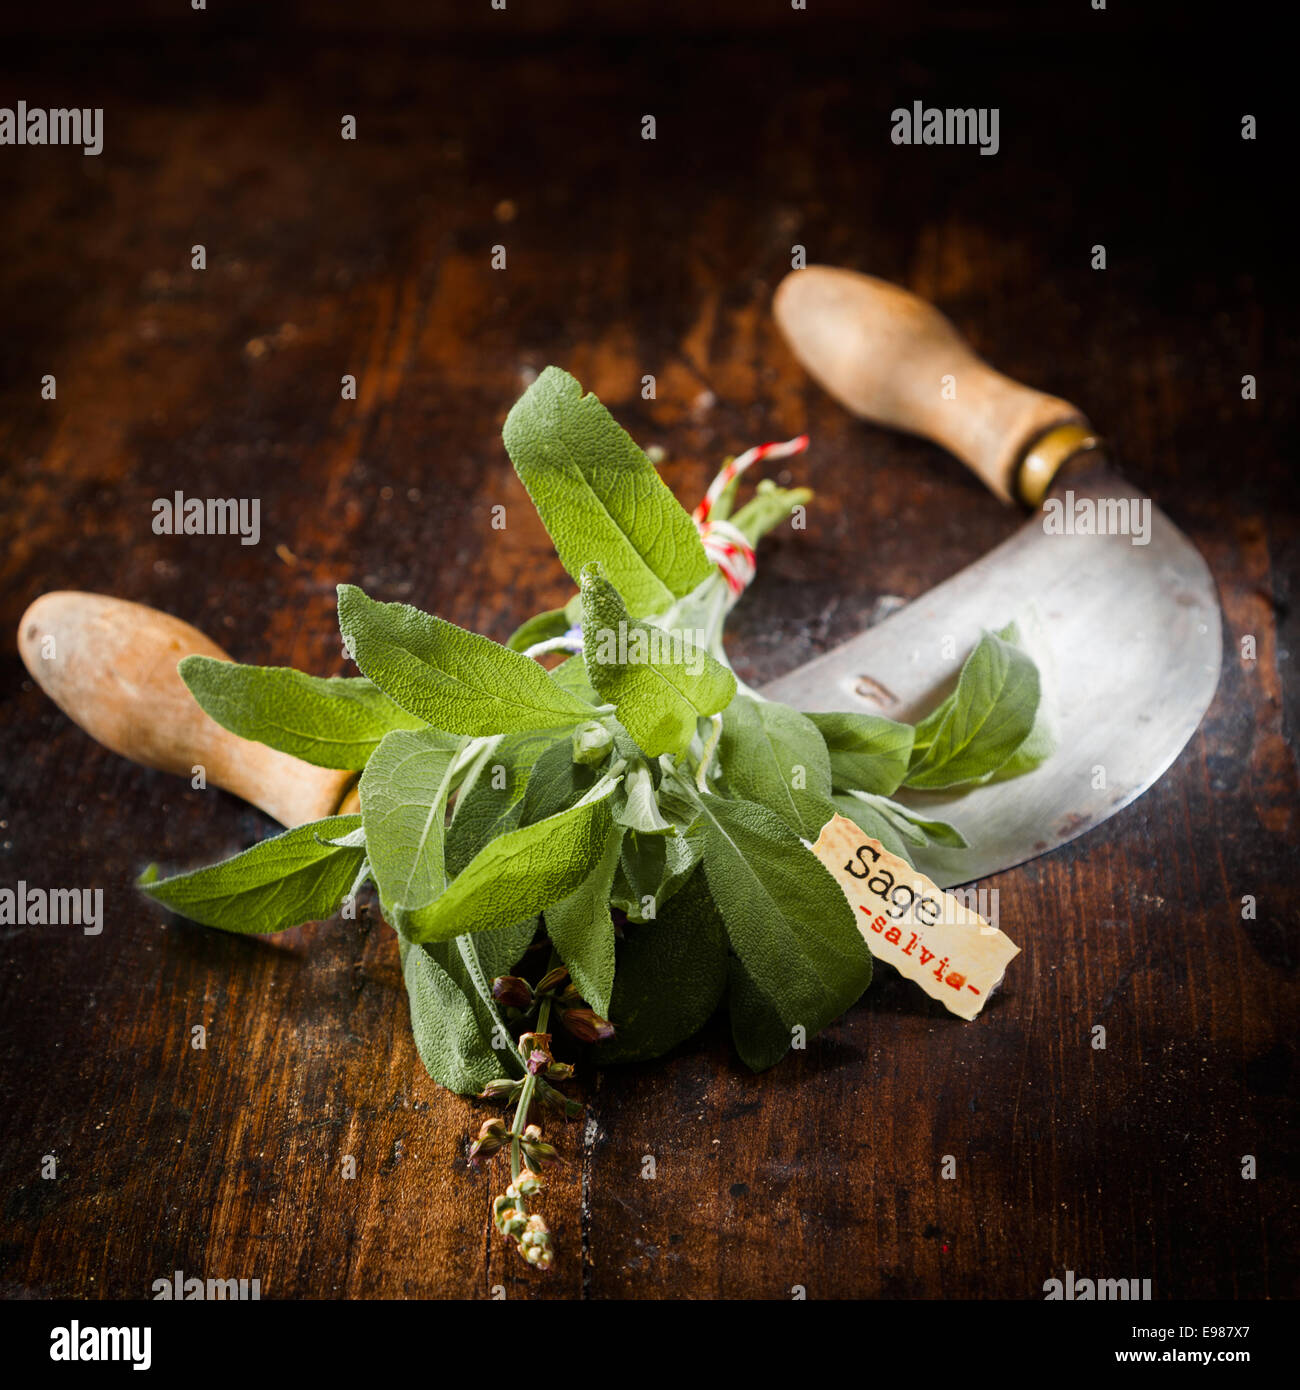 Labeled Sage with a chopping knife on a vintage wooden background - Stock Image